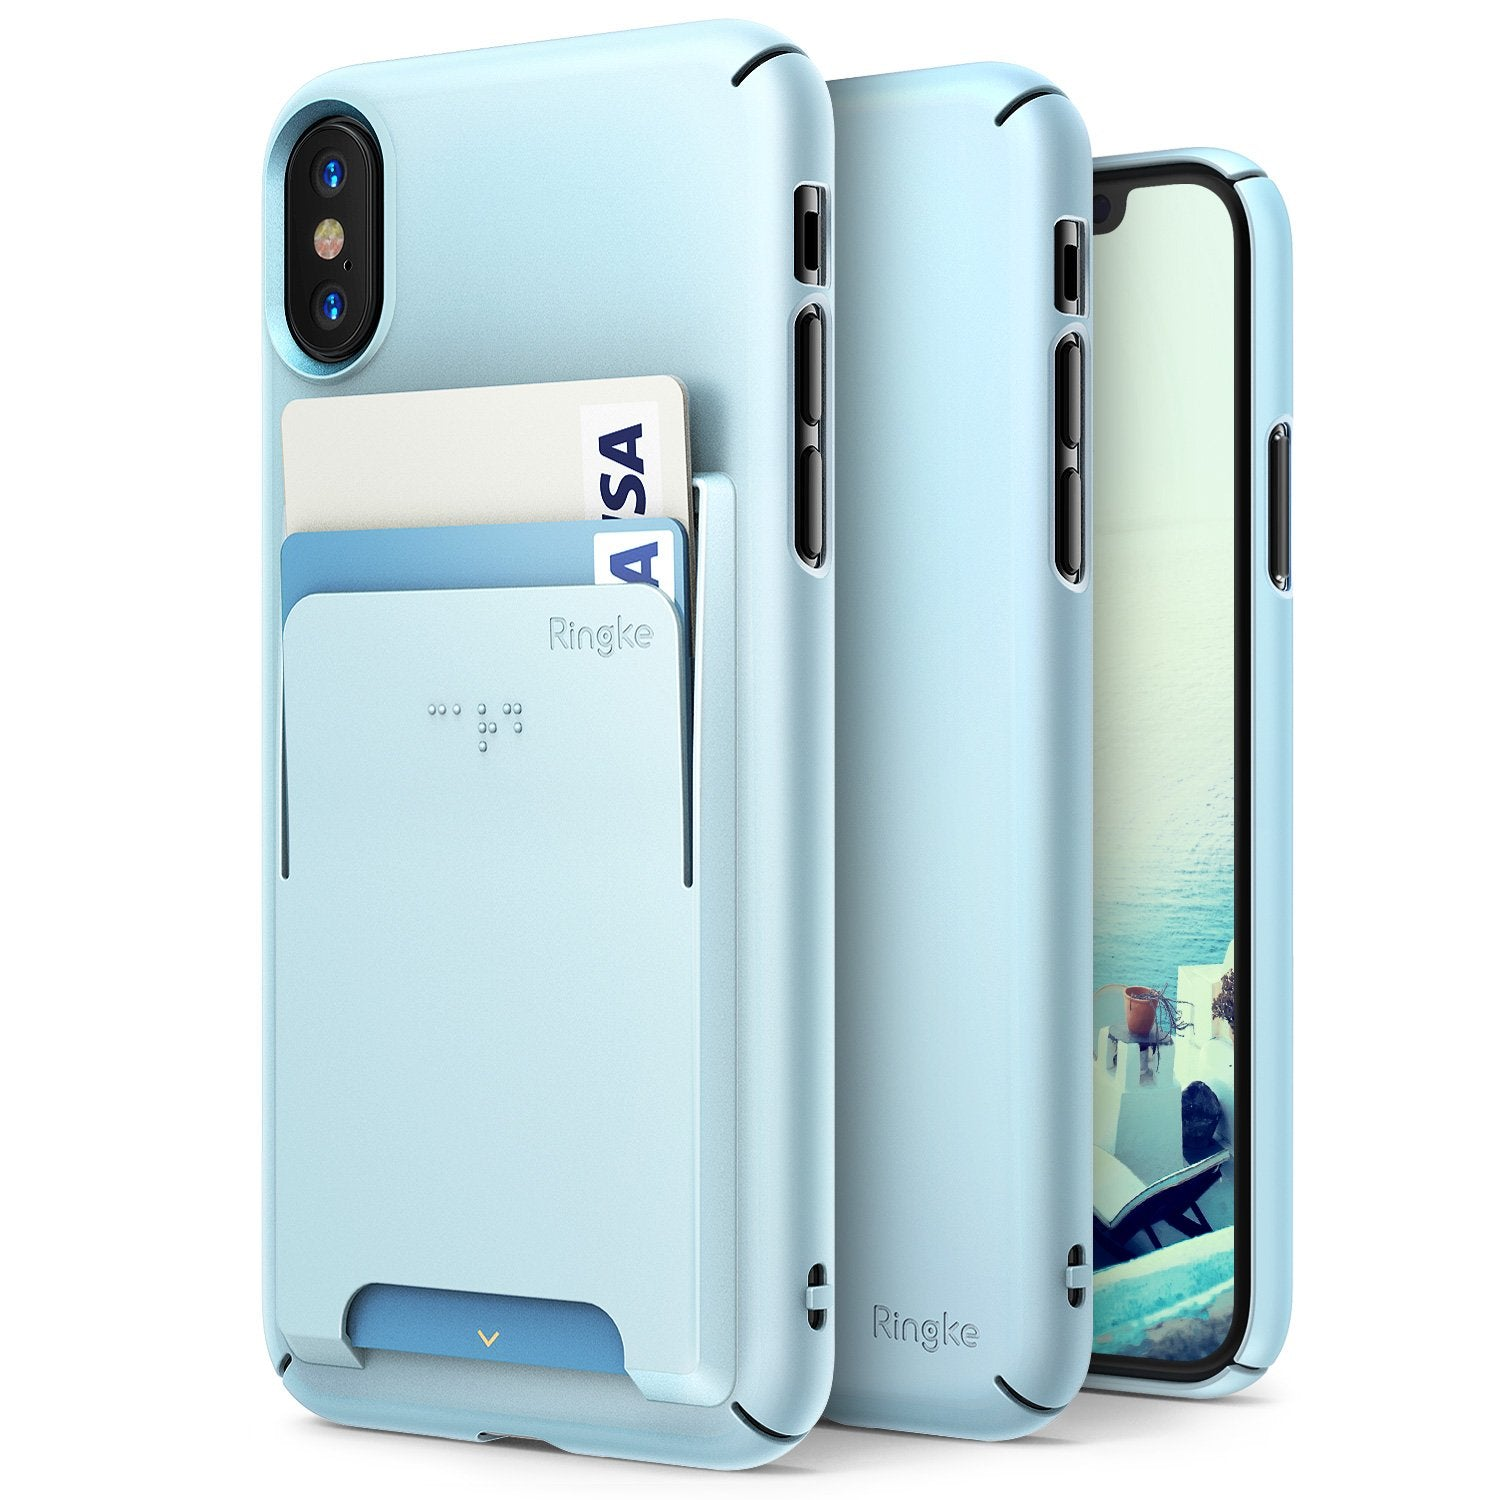 ringke slim slot for iphone x case cover main sky blue